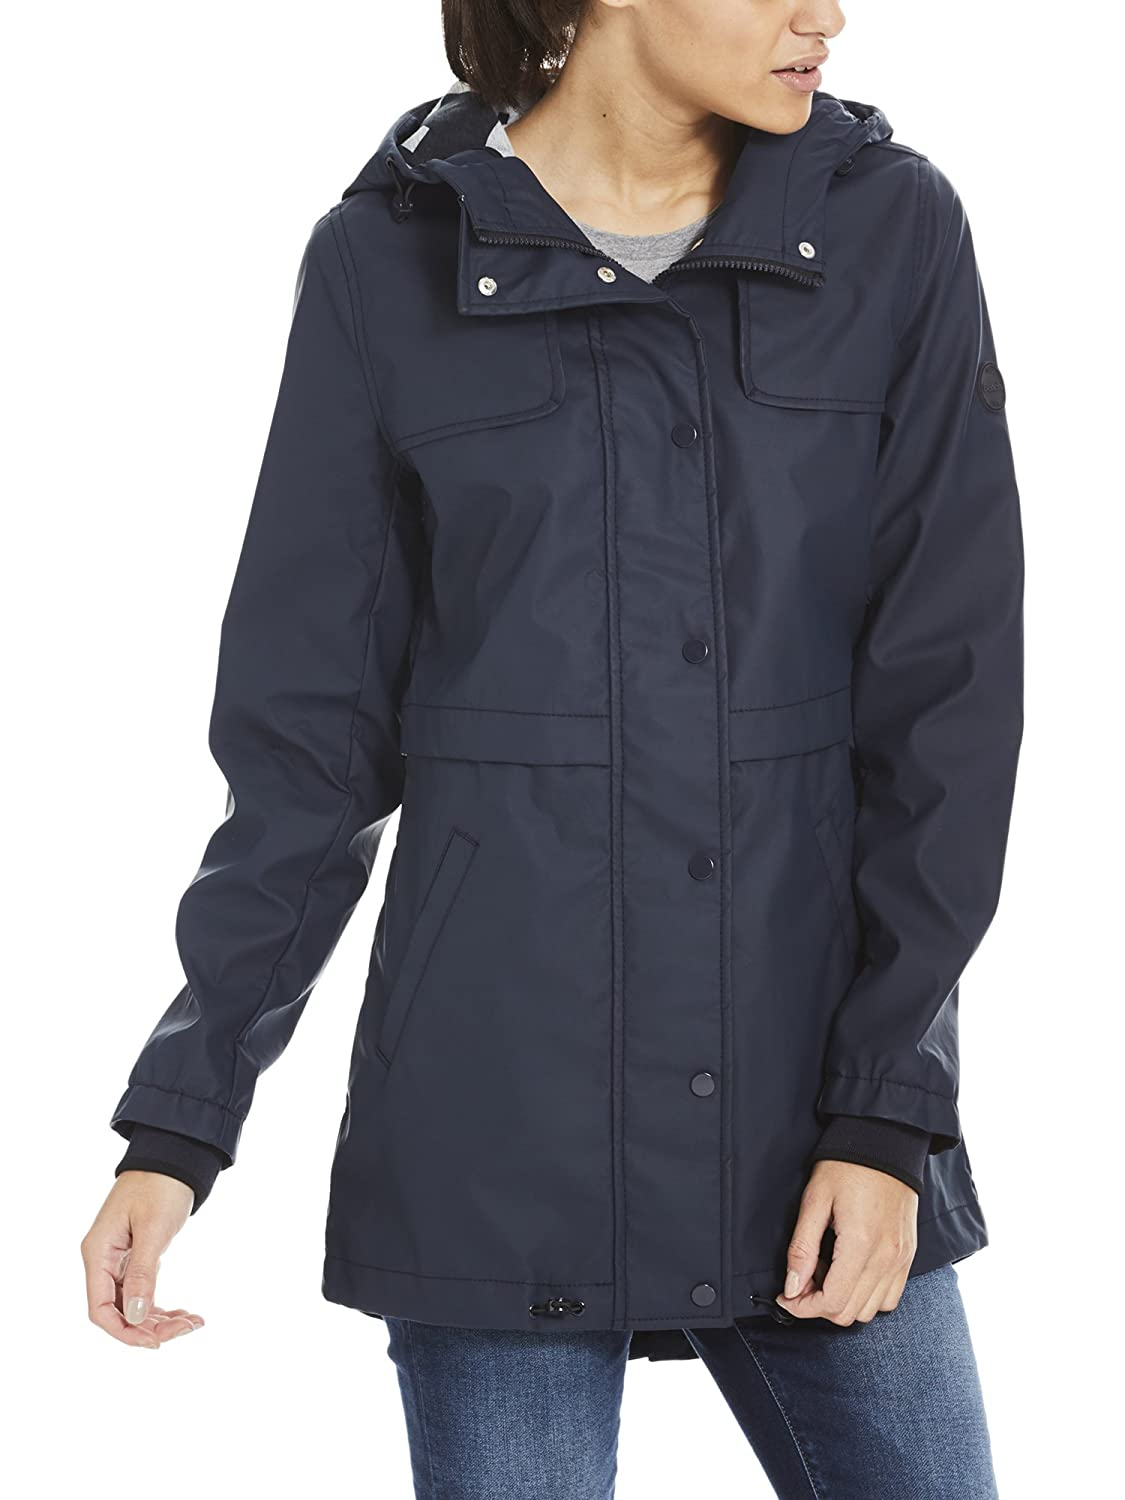 TALLA L. Bench Bonded Slim Rainjacket Impermeable para Mujer